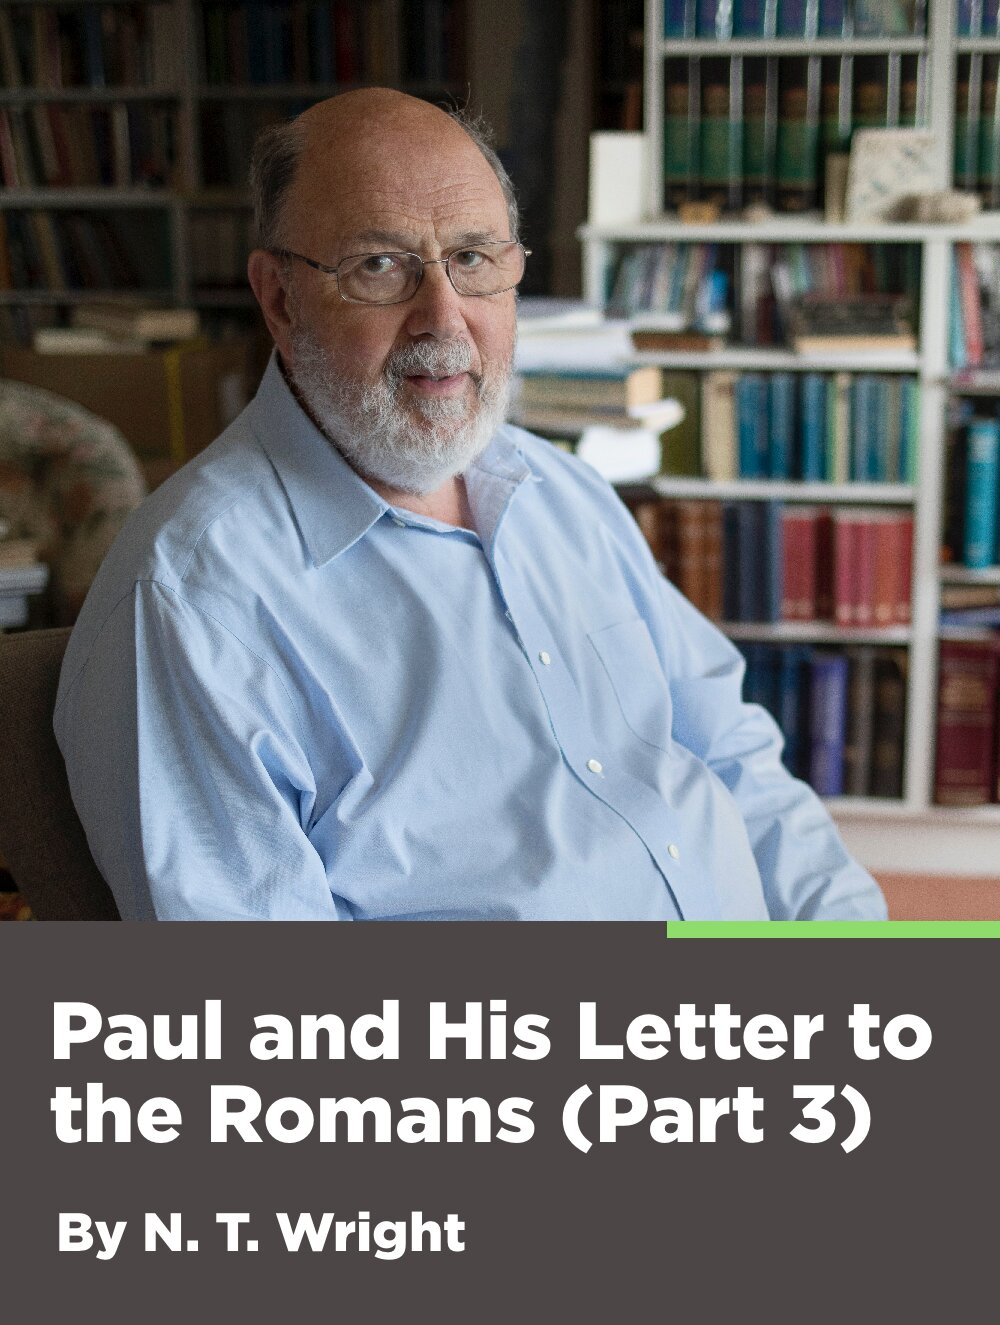 Paul and His Letter to the Romans Part 3